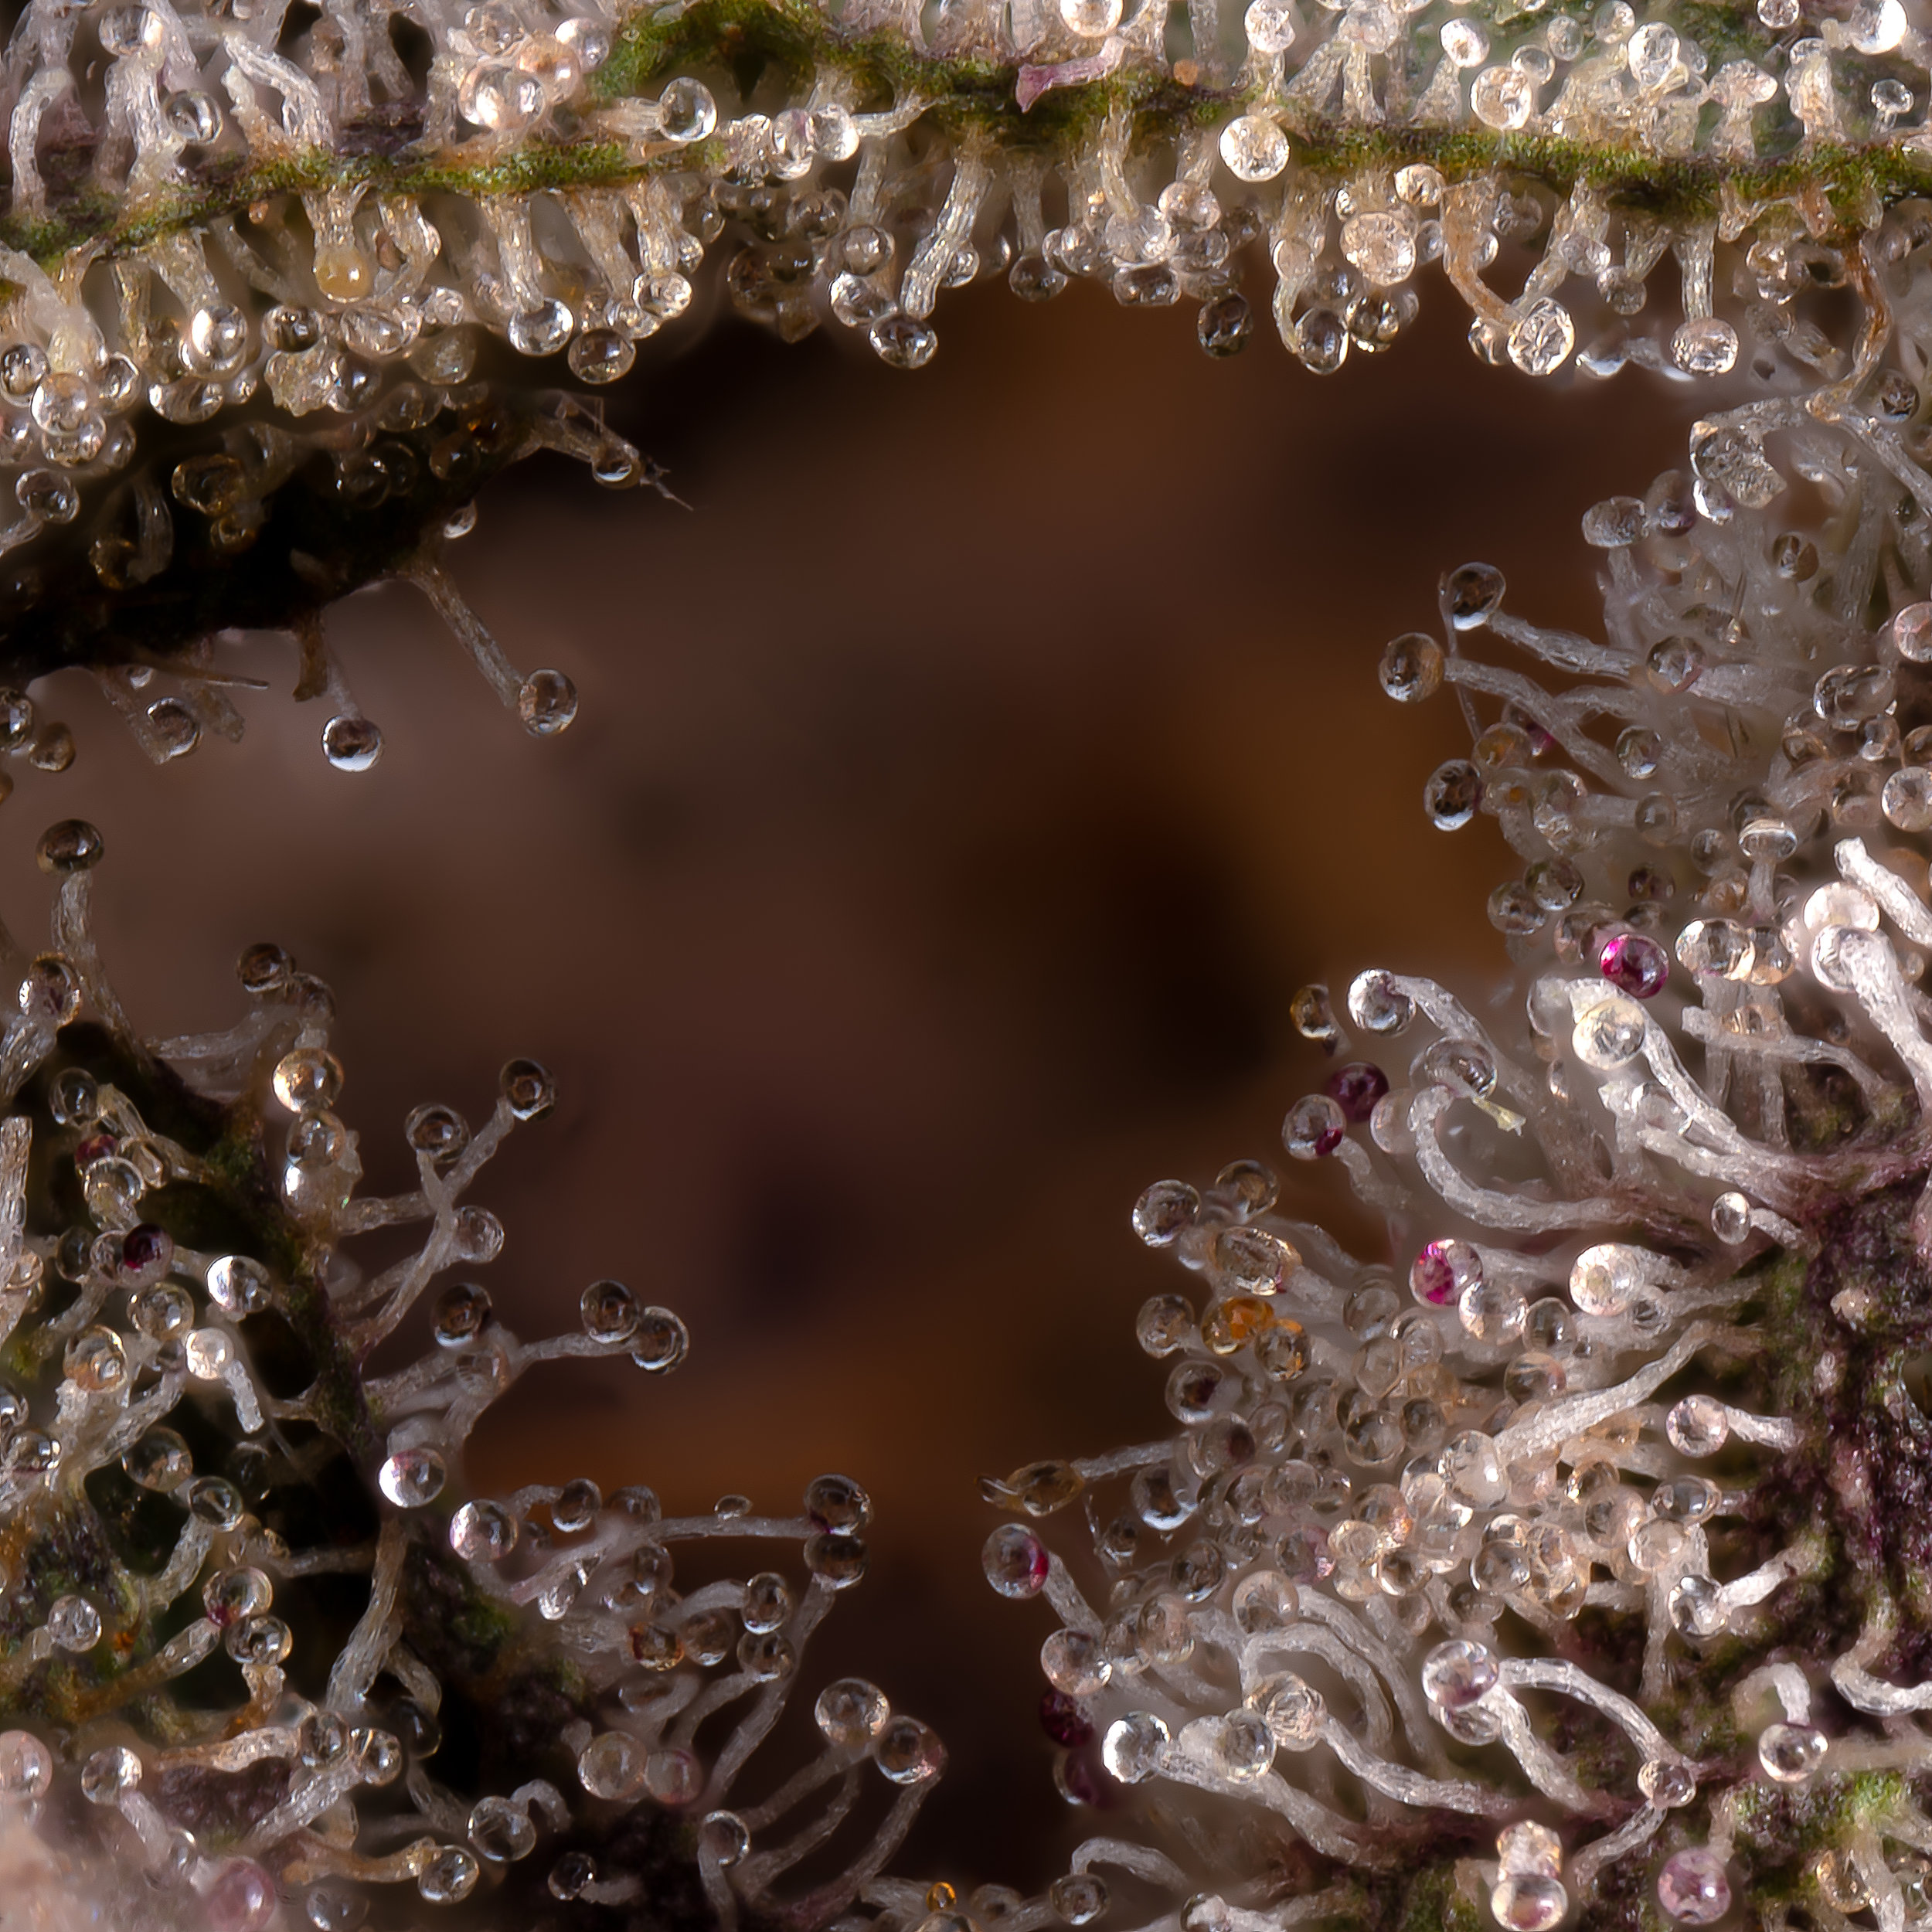 Shark mouth of trichomes